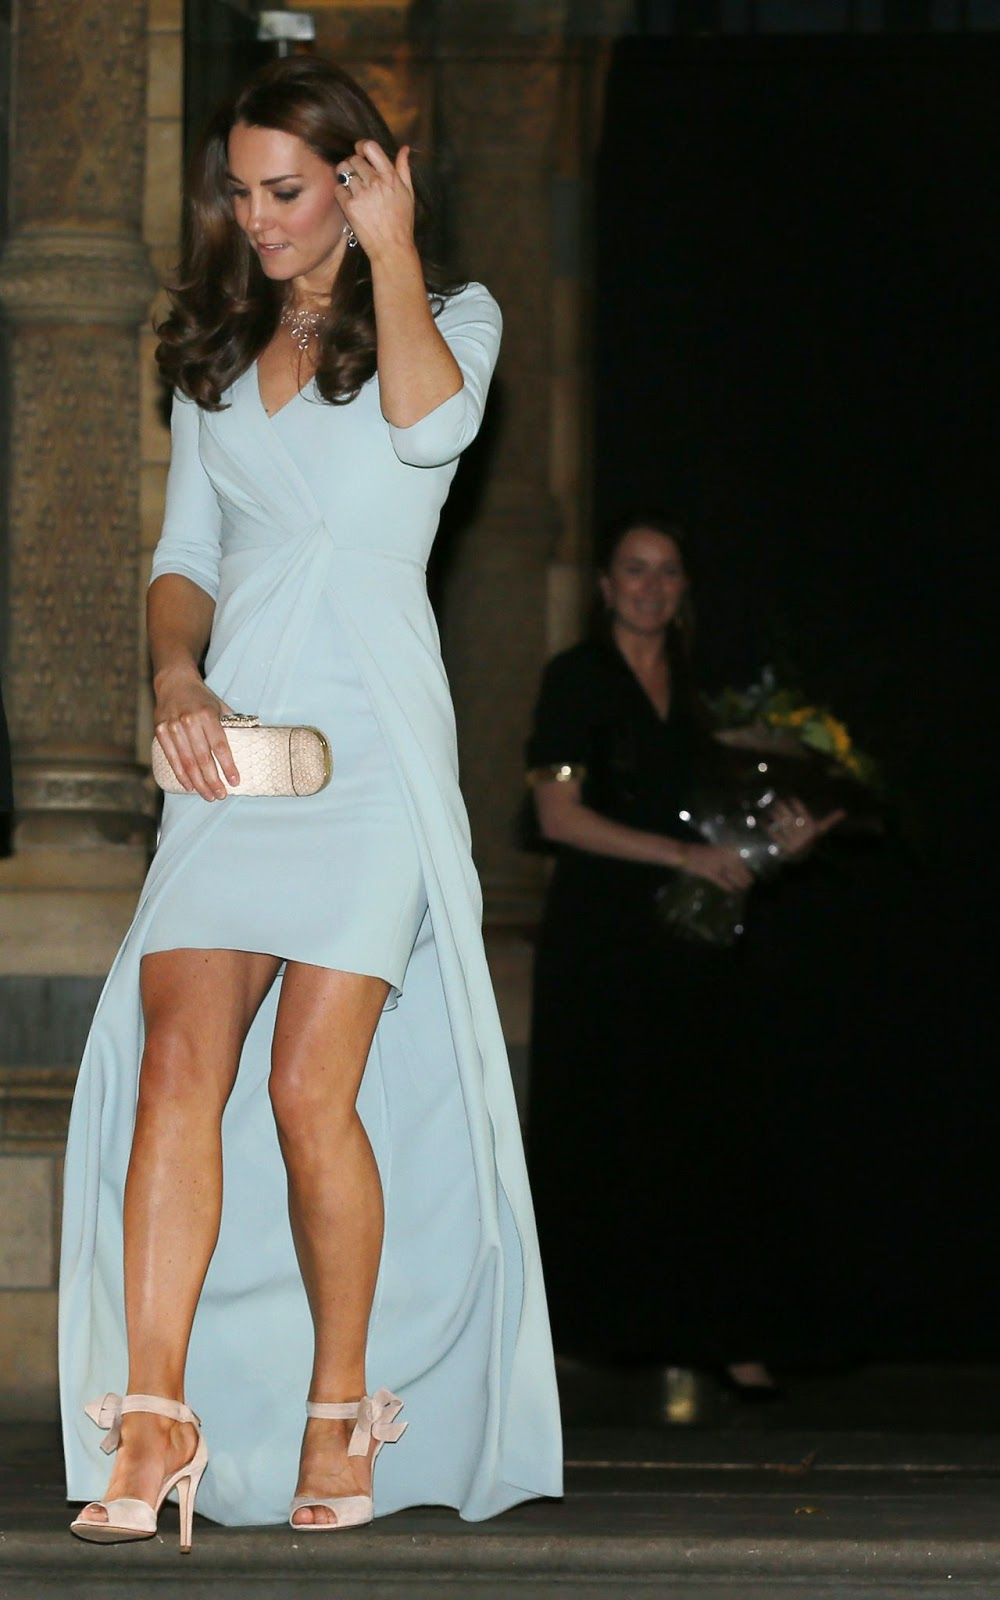 Princes Kate With Blue Dresses And Shoes